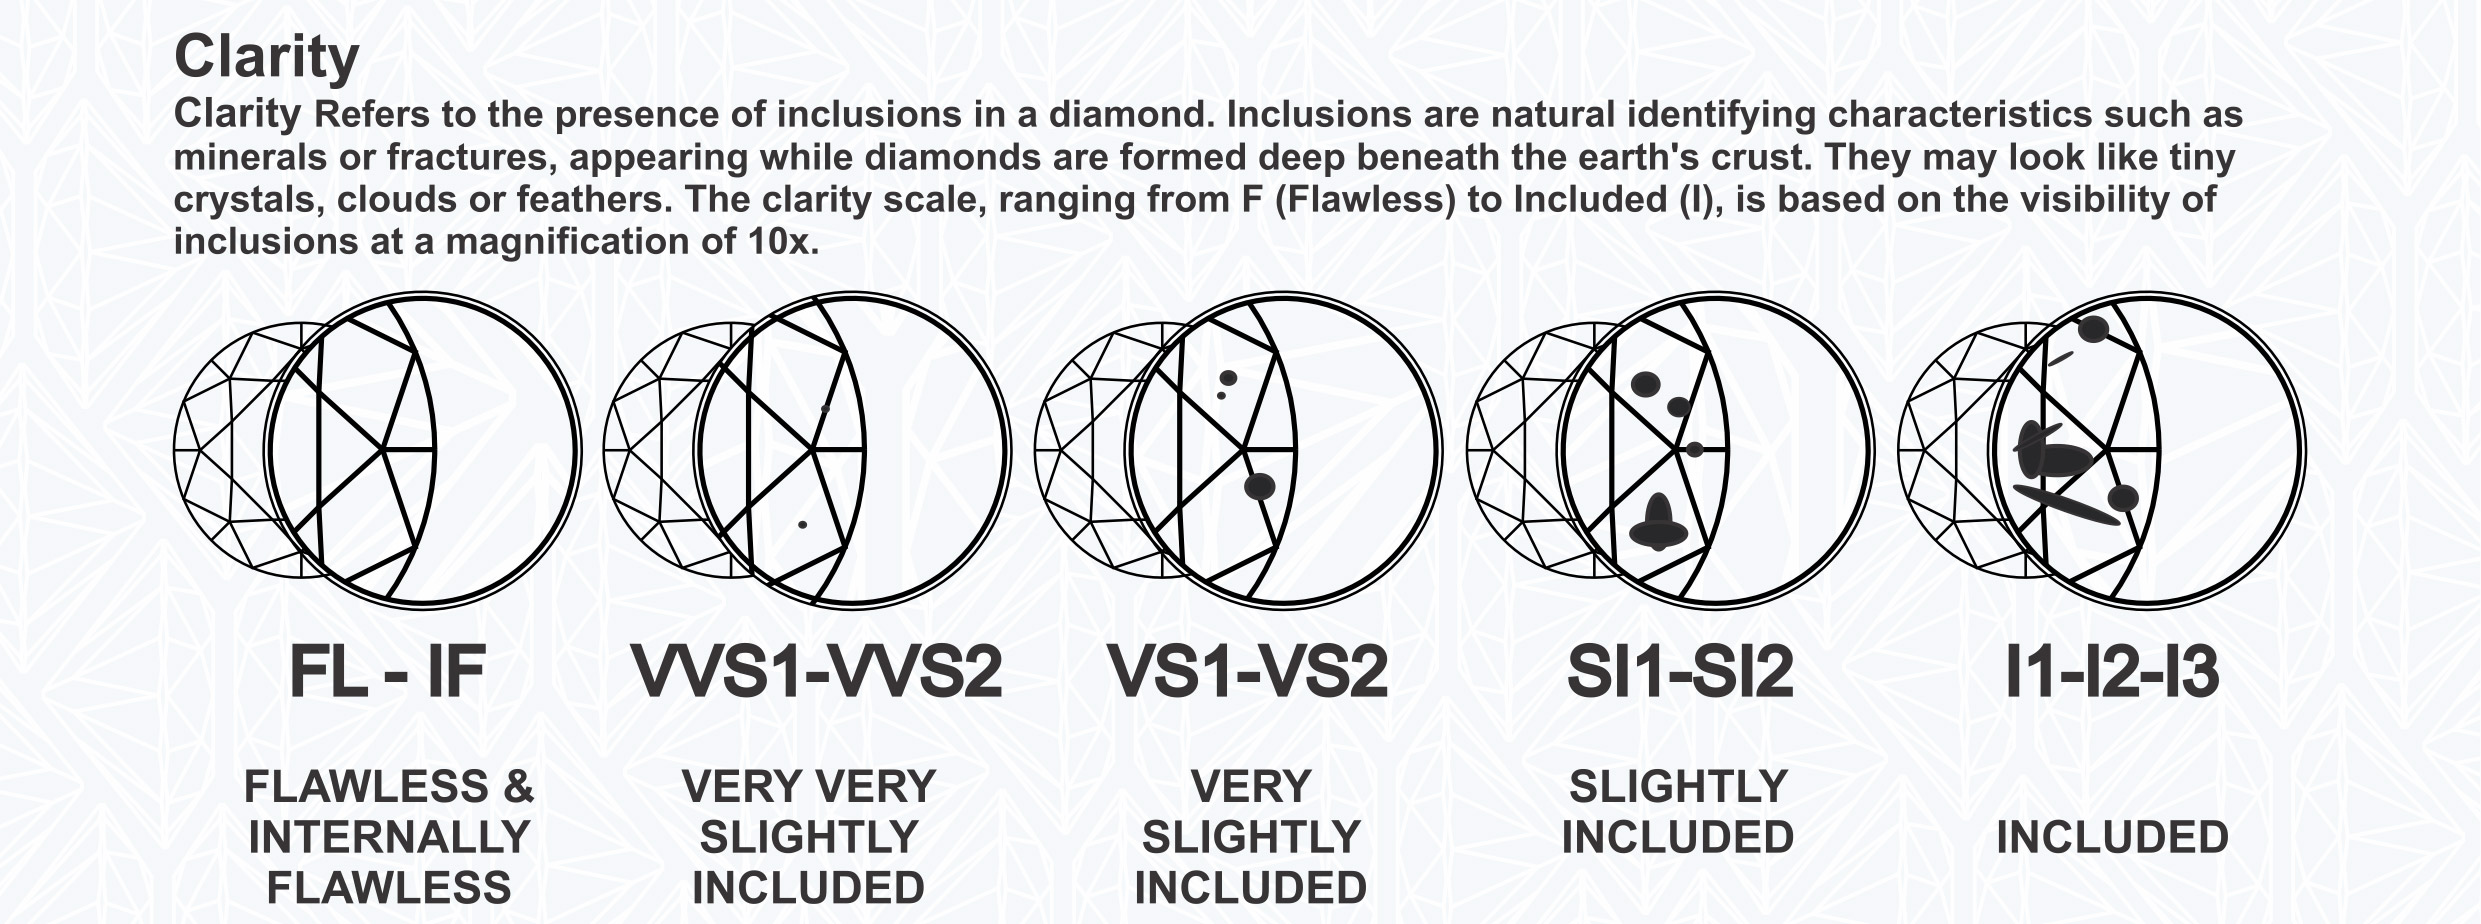 all clarity diamond com us with carat shopping diamondforyou chart diamonds about b